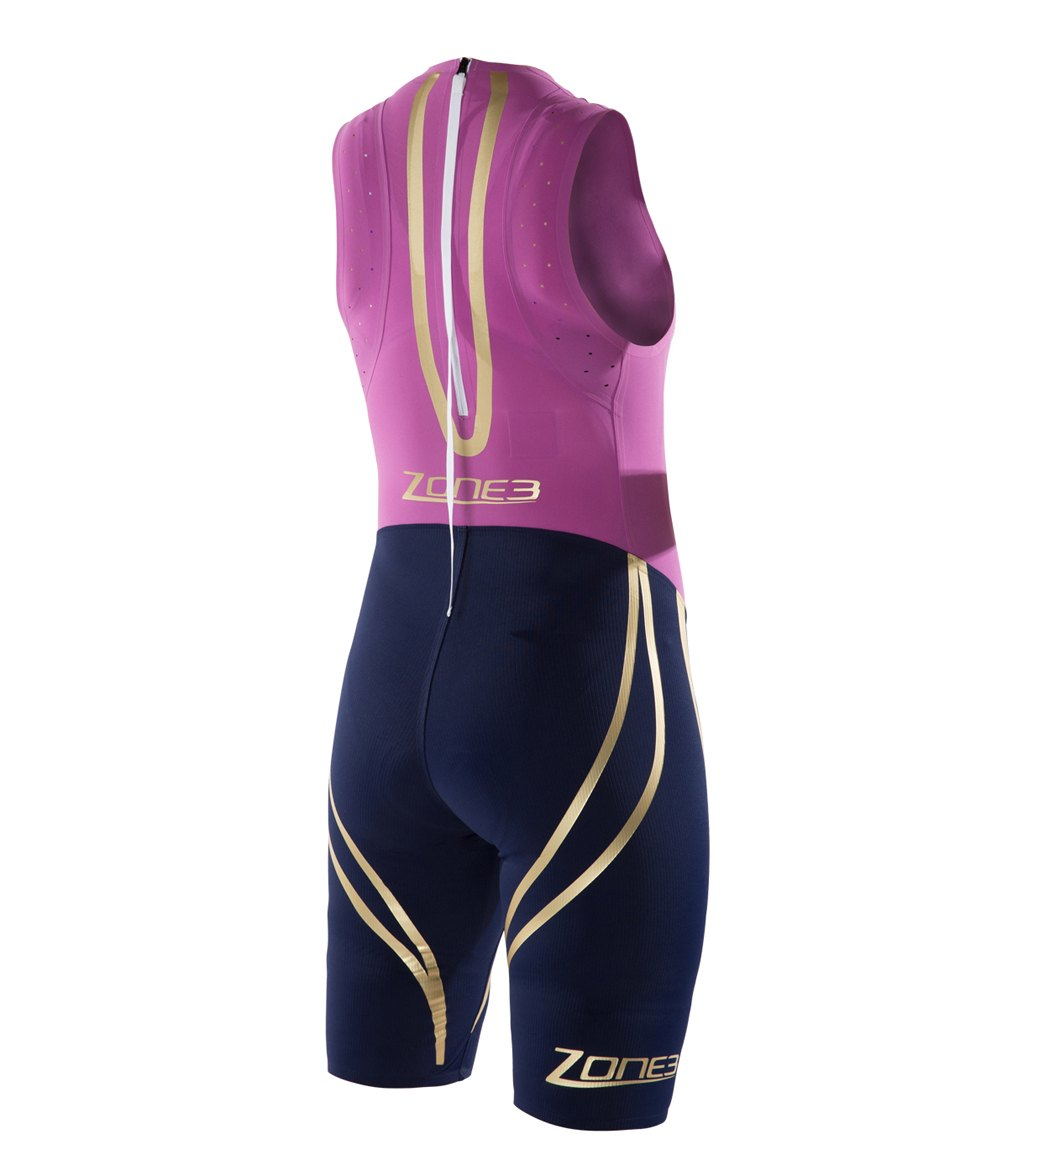 Zone 3 Women s Swim Skin at SwimOutlet.com - Free Shipping ac0c425f8